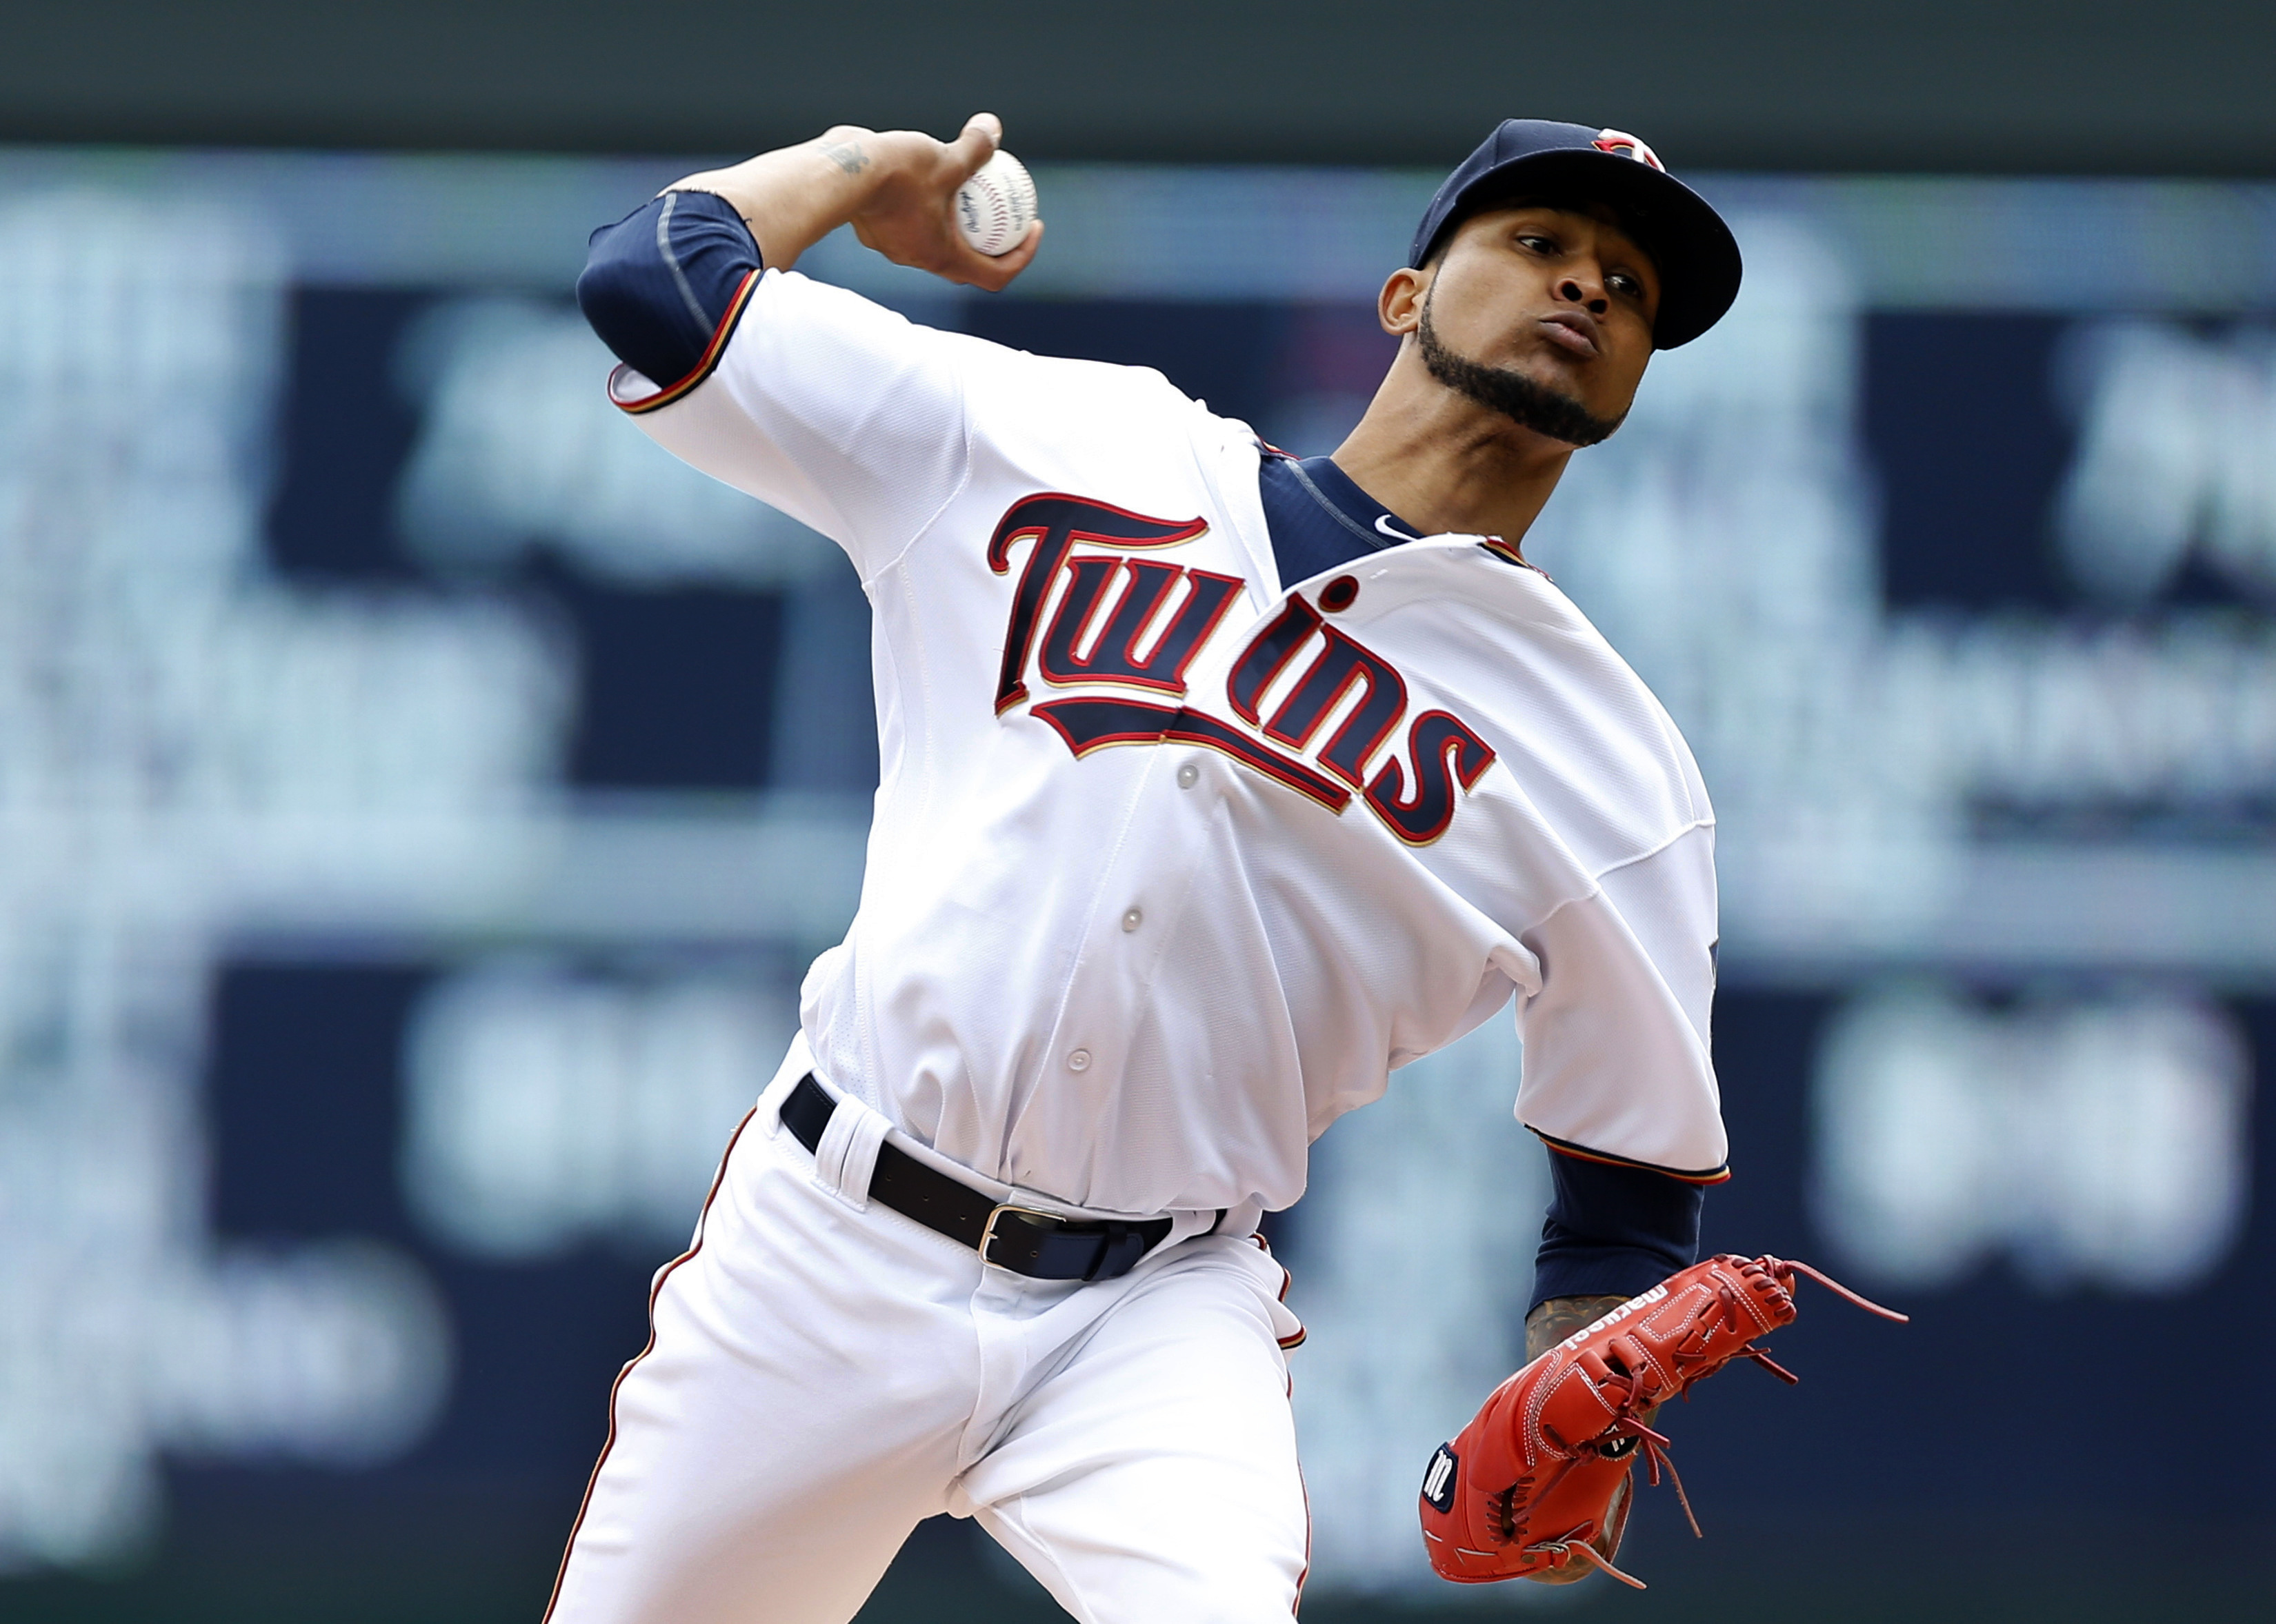 Minnesota Twins pitcher Ervin Santana throws against the Milwaukee Brewers in the first inning of a baseball game Tuesday, April 19, 2016, in Minneapolis. (AP Photo/Jim Mone)